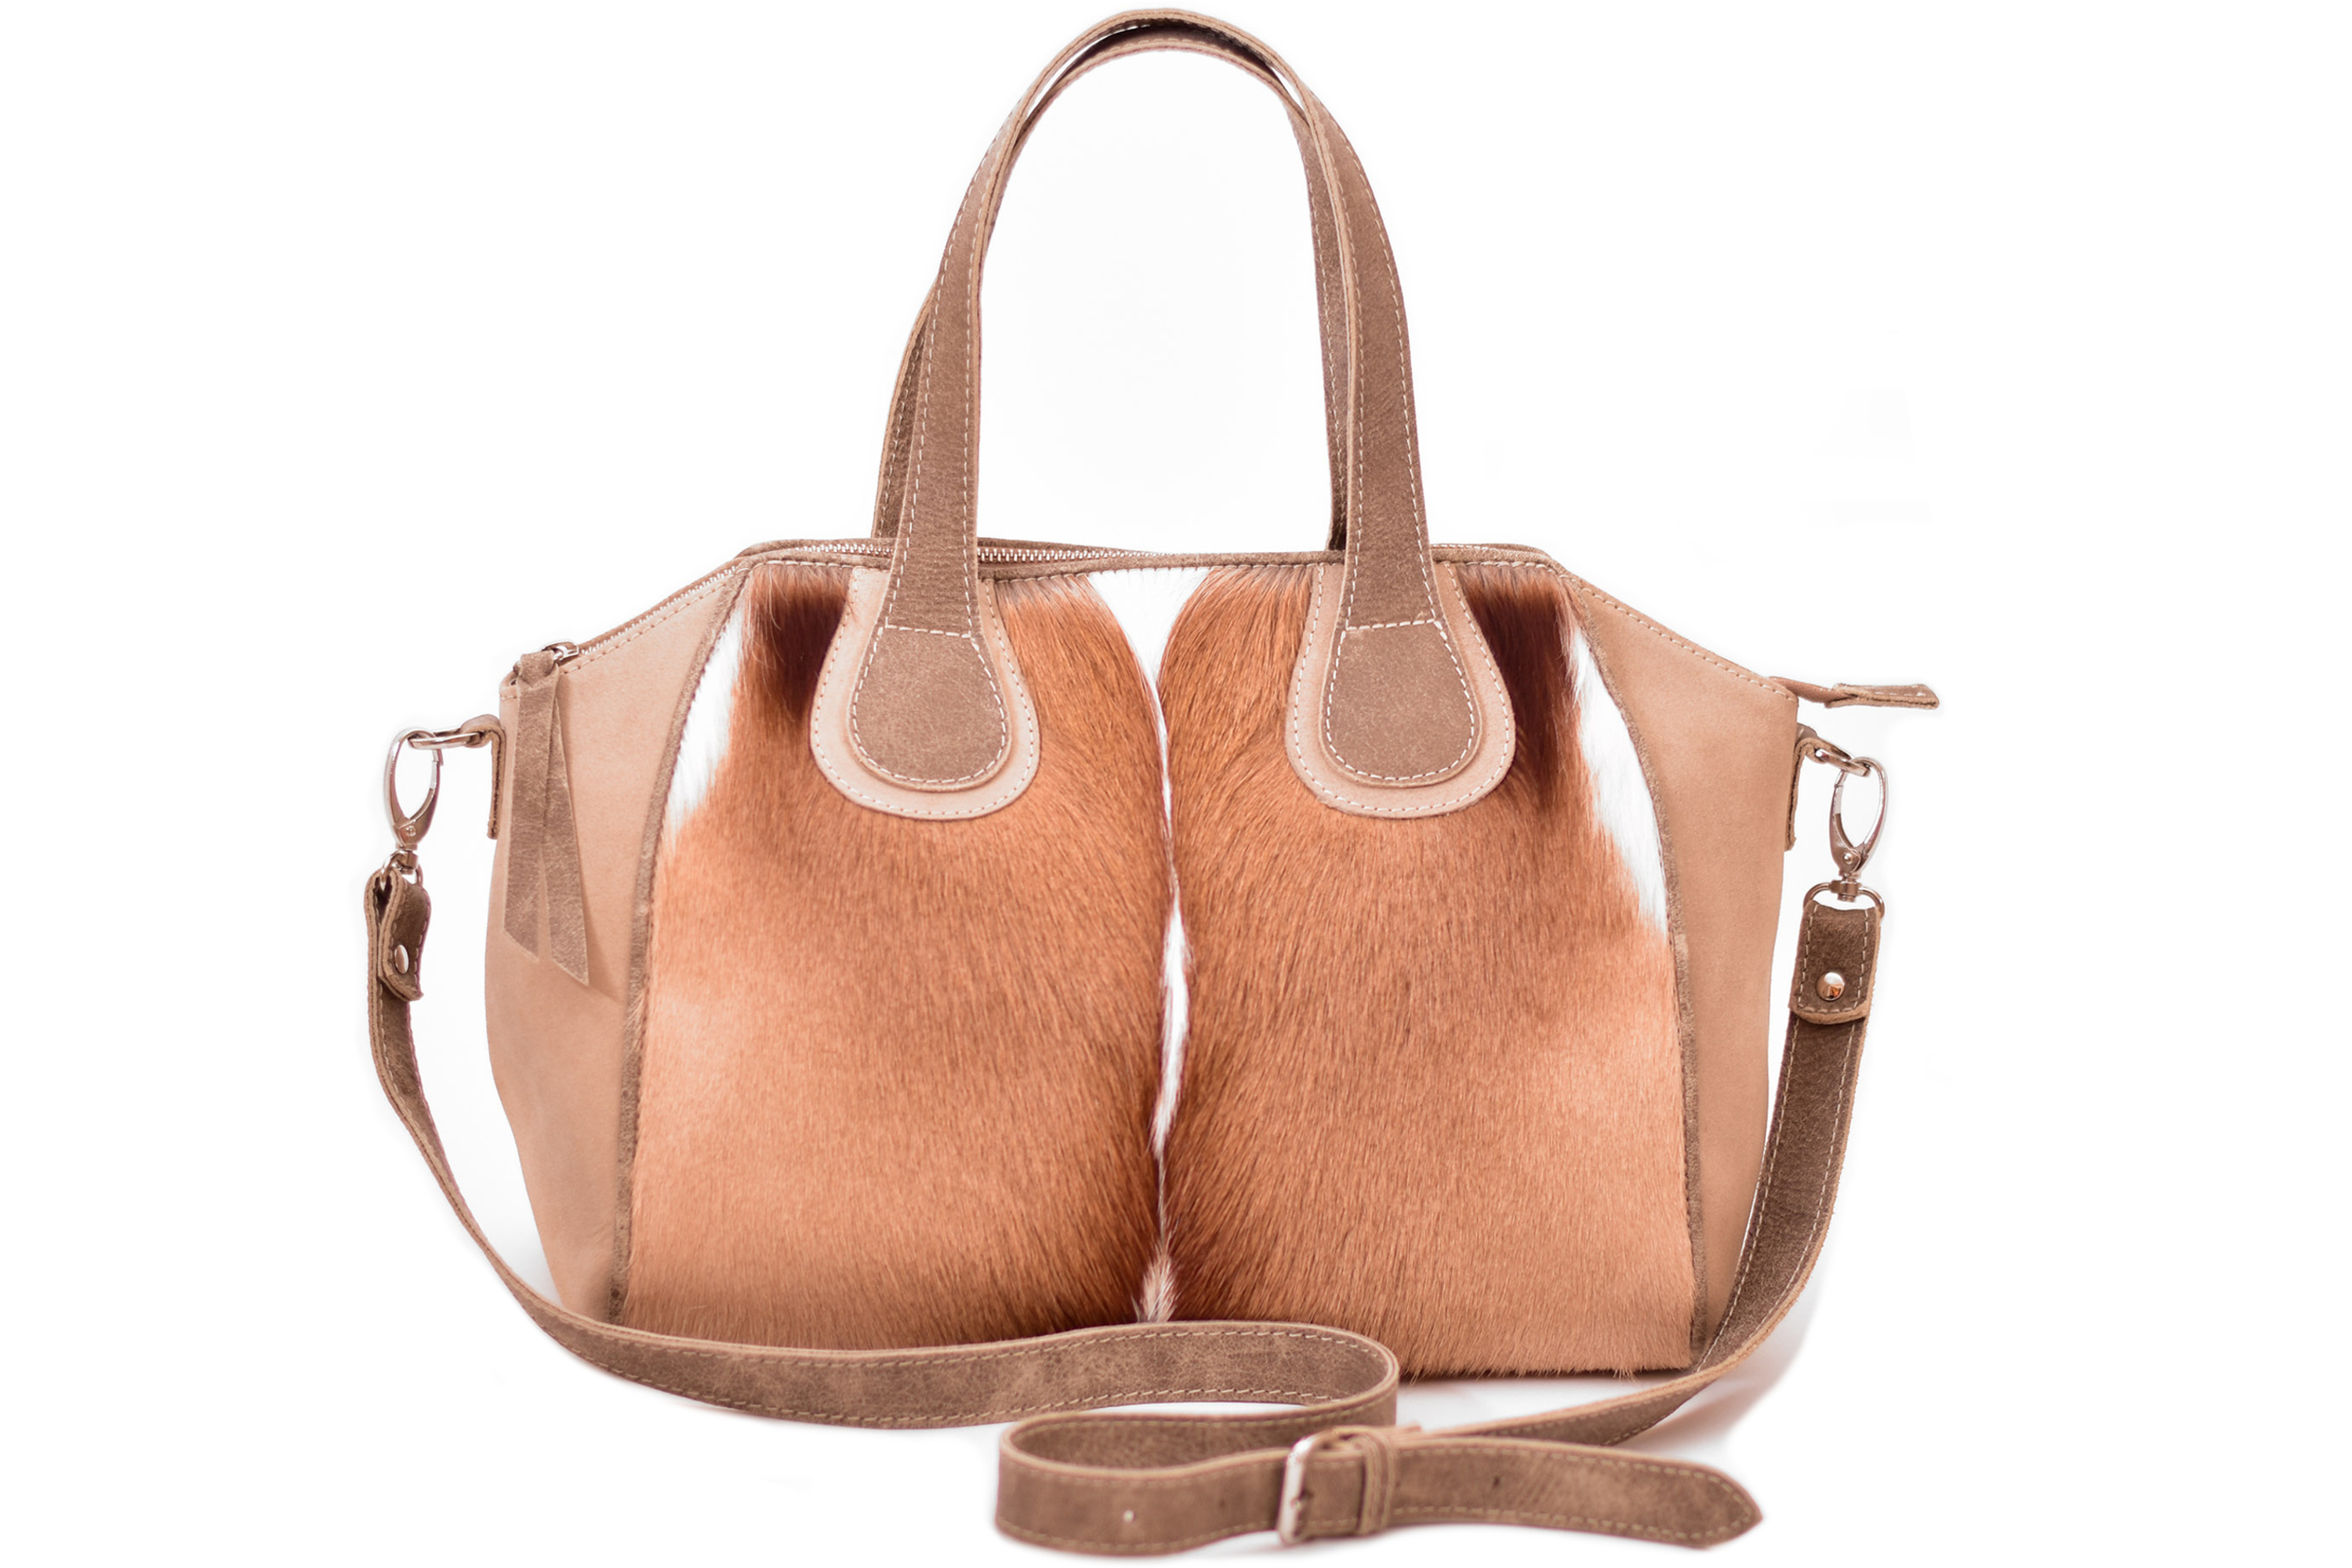 Briseis Handbag Stone Leather